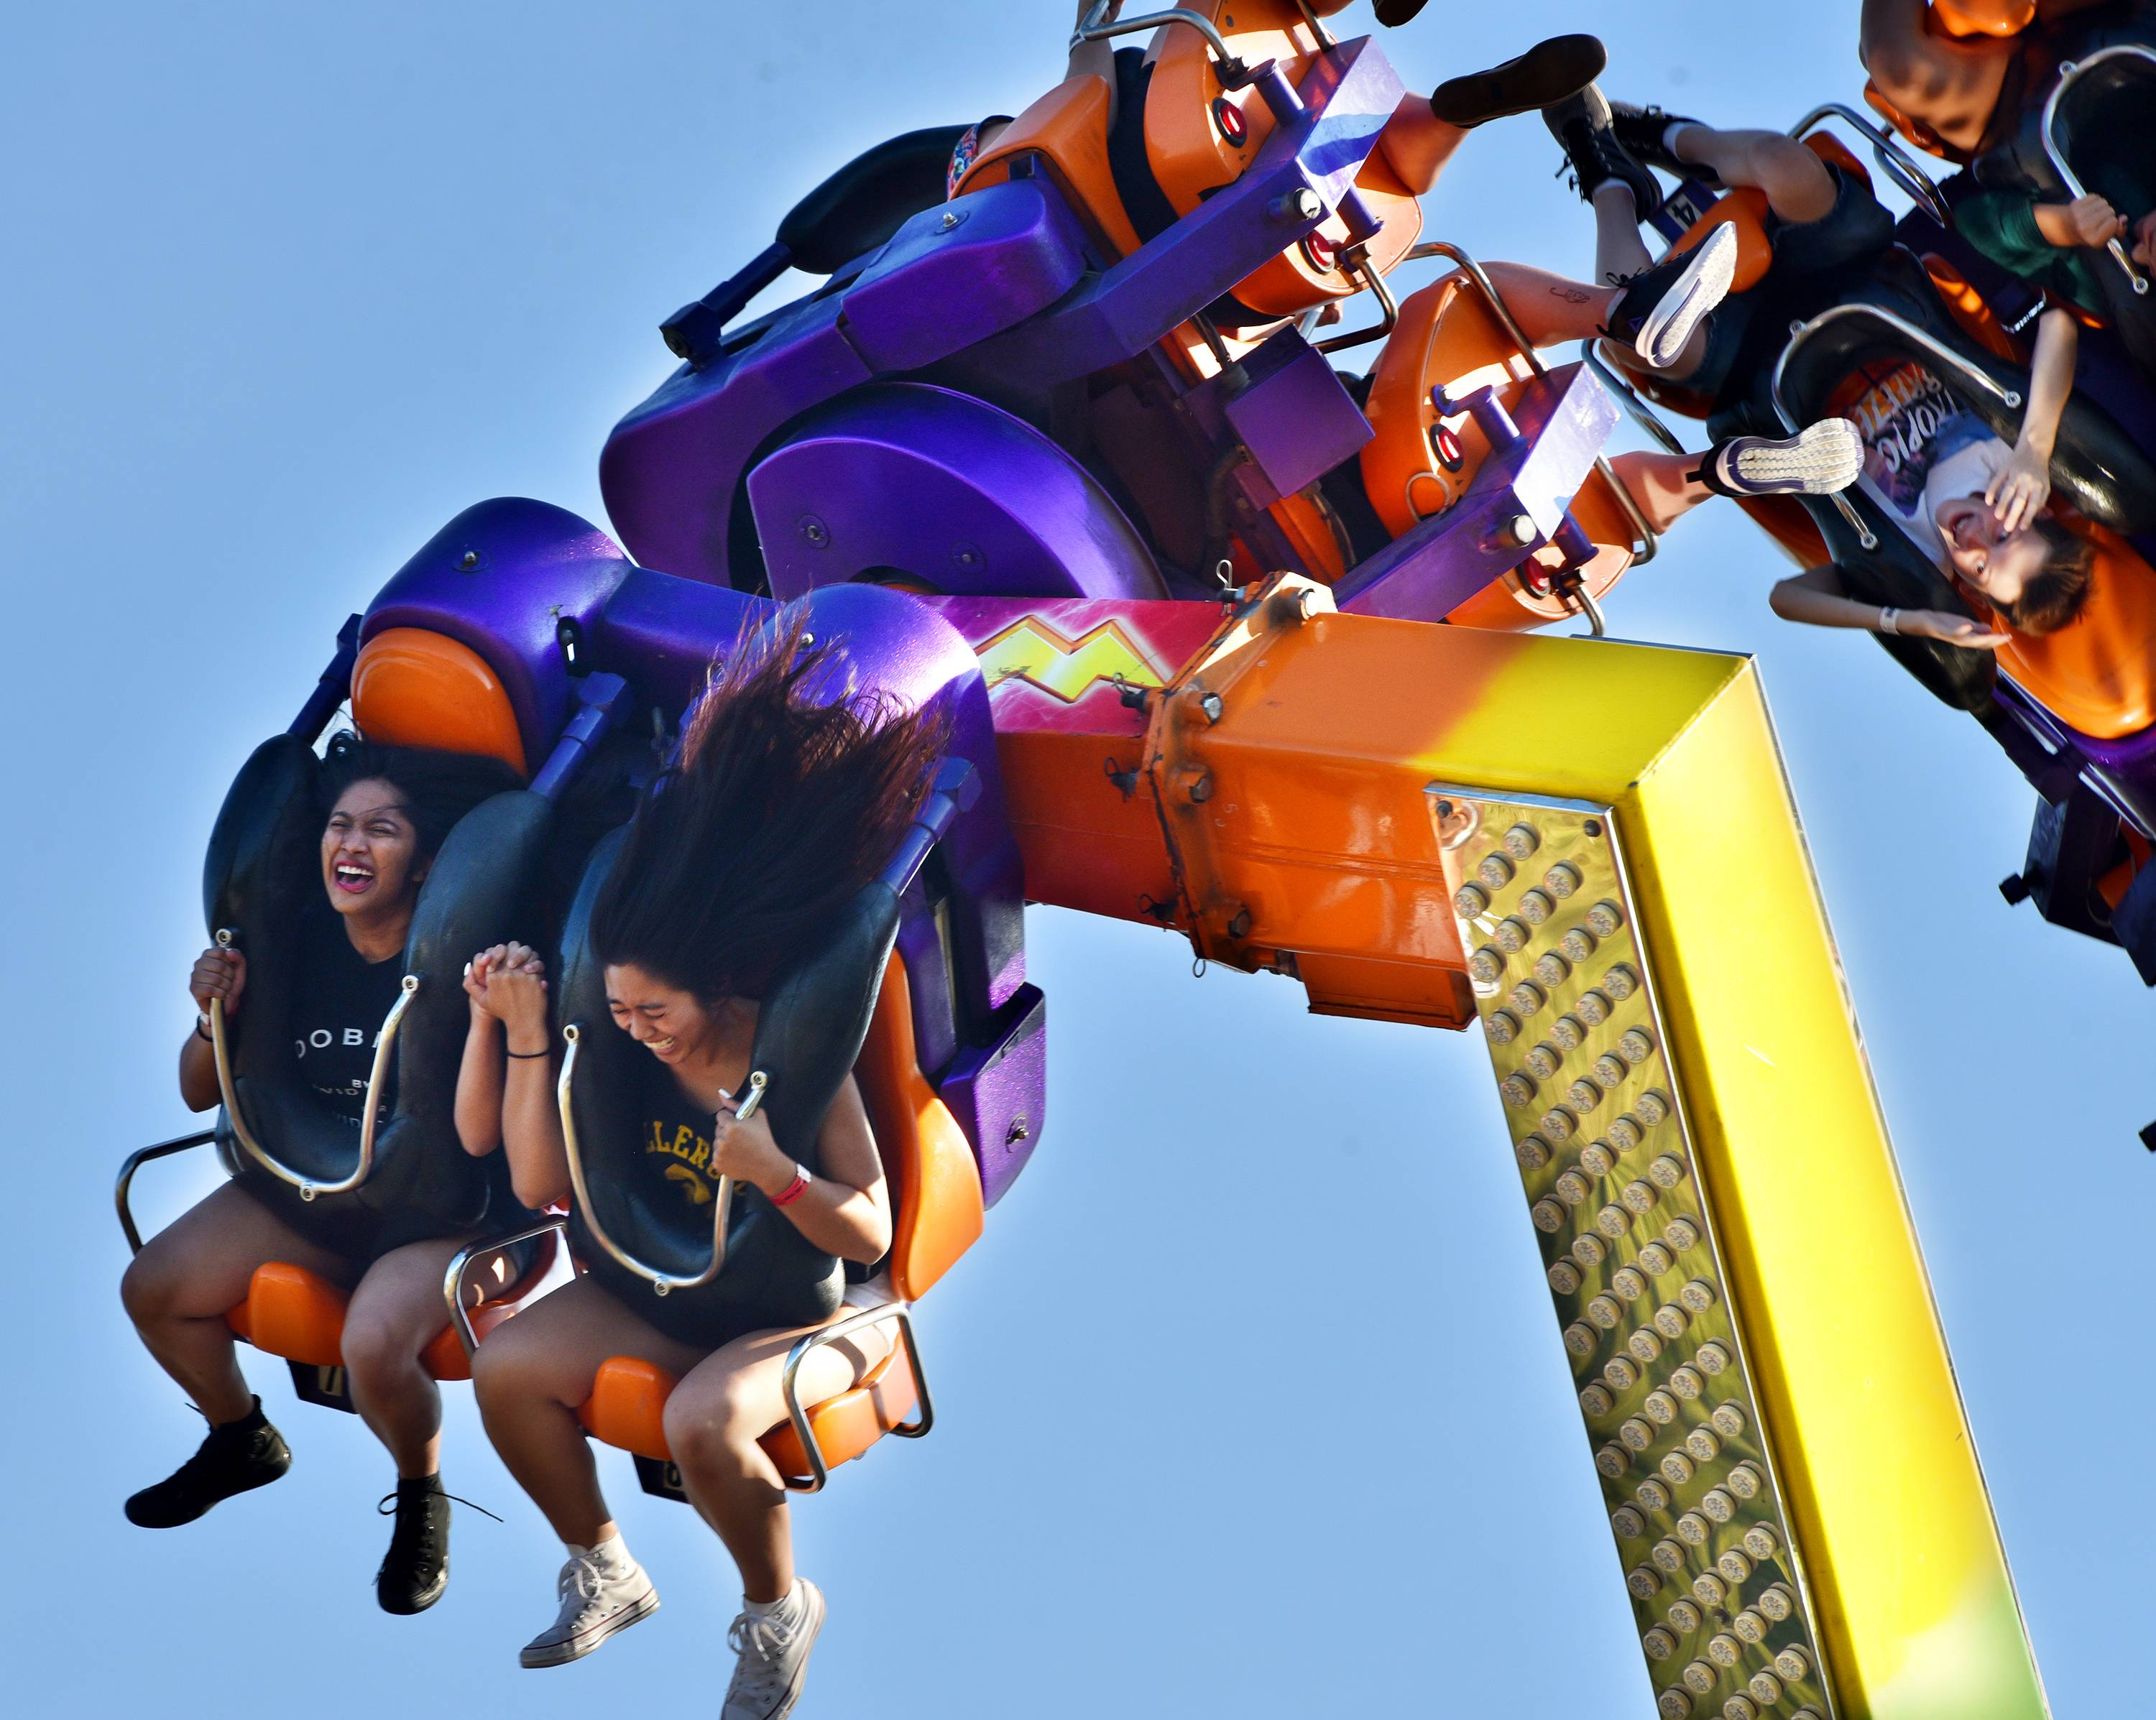 Riders laugh on the Power Surge at the Glendale Heights Fest Wednesday evening.